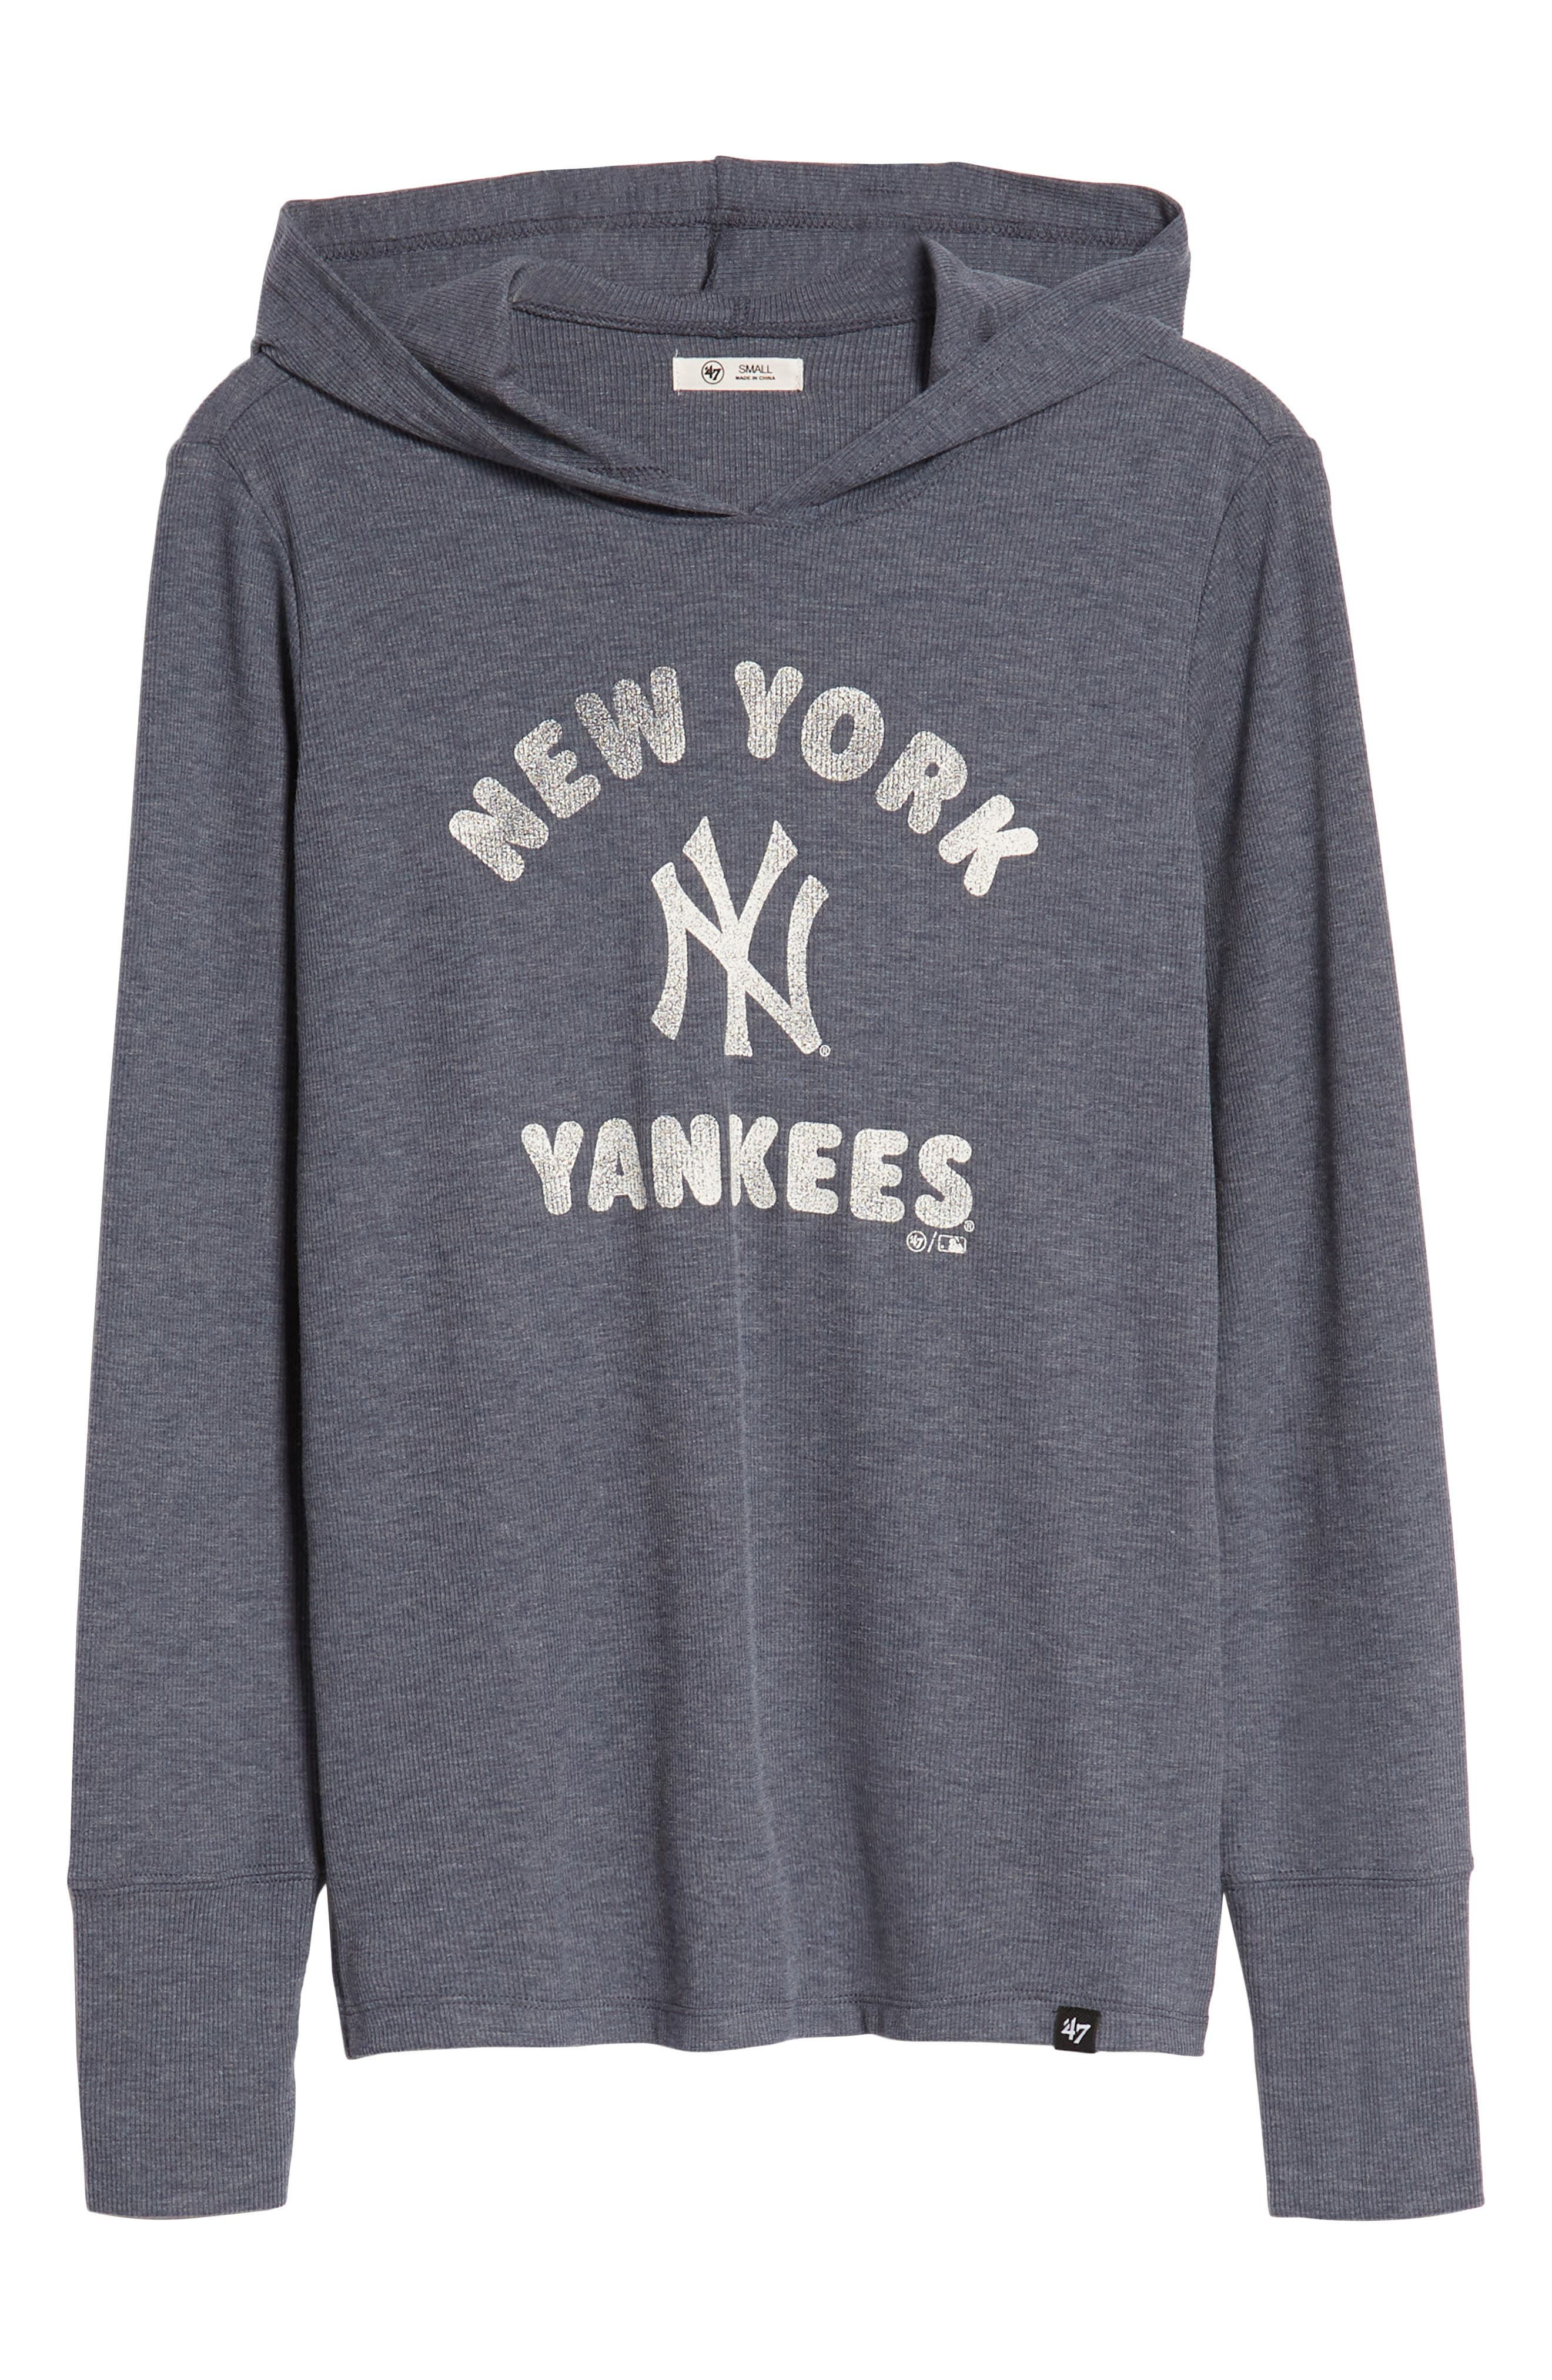 Campbell New York Yankees Rib Knit Hooded Top,                             Alternate thumbnail 7, color,